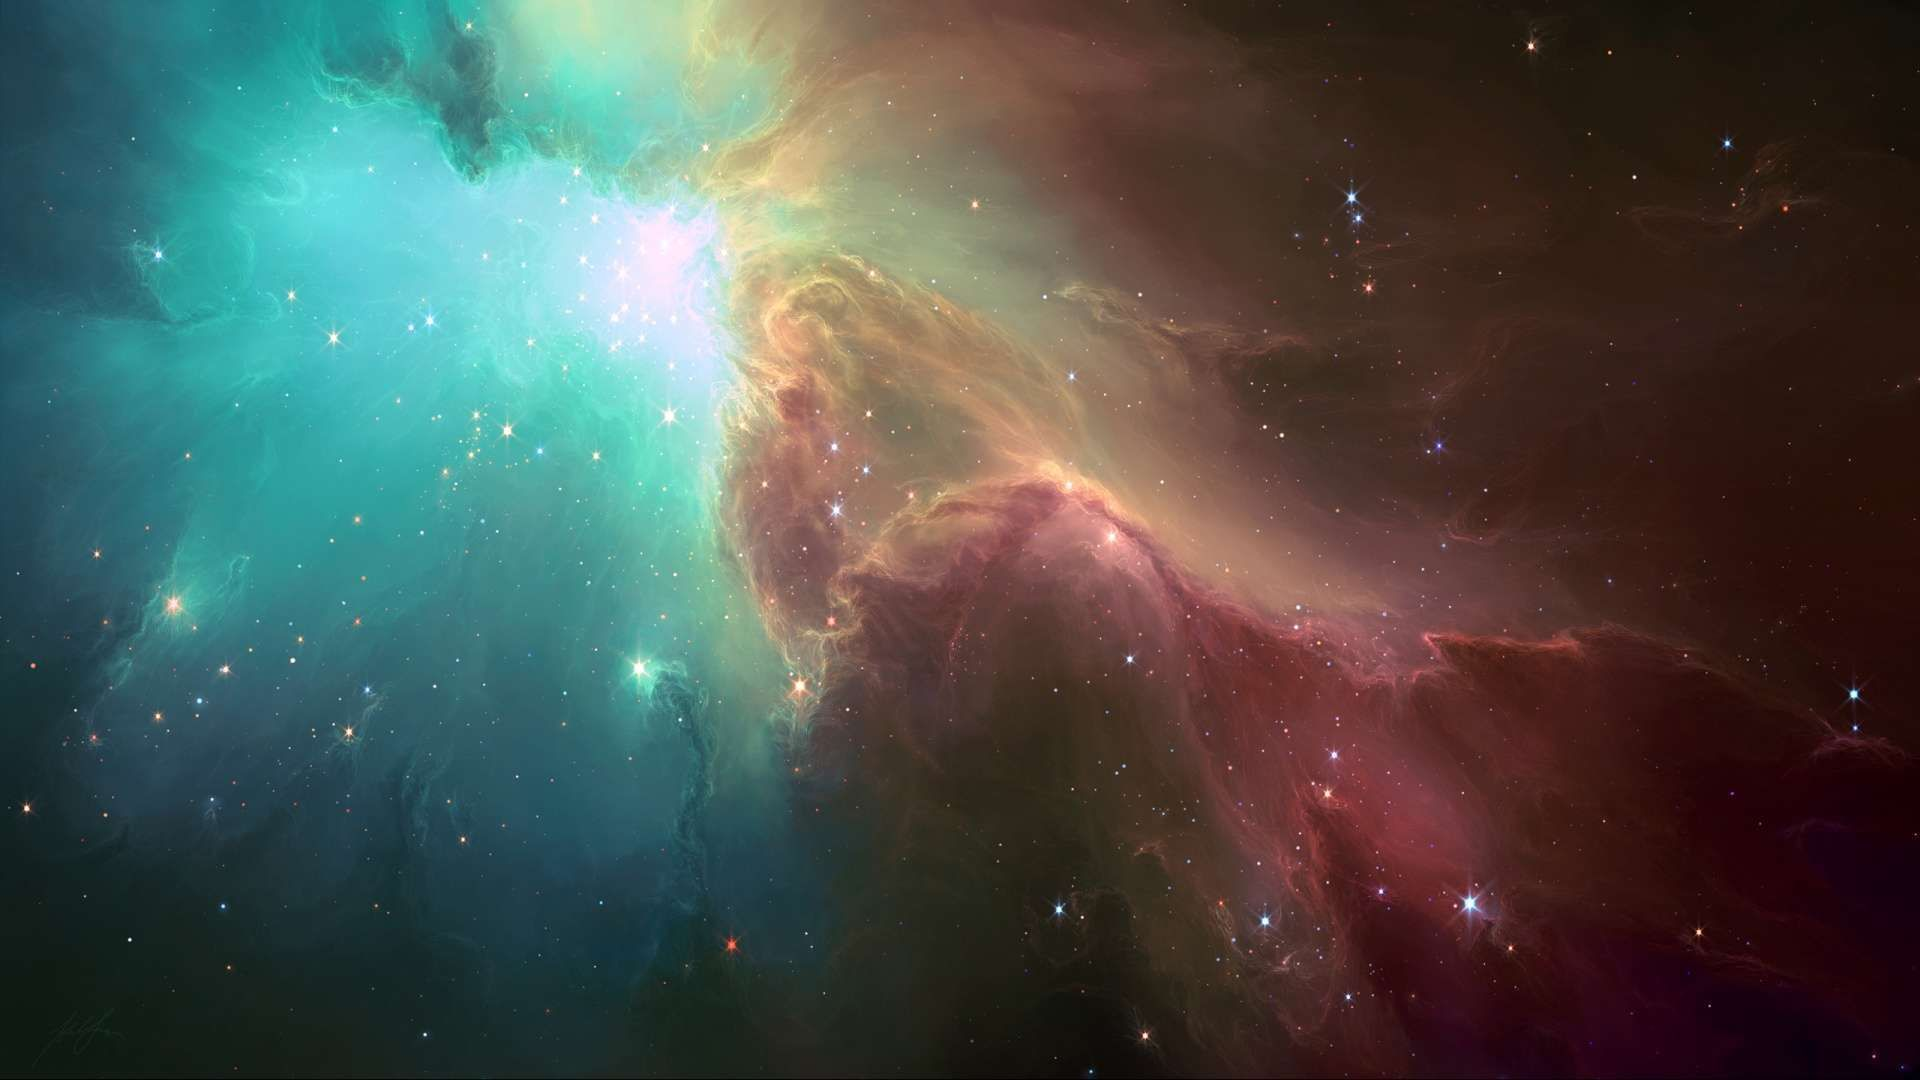 Nebulae Sky HD Wallpaper 1080p | Stuff to Buy | Pinterest ...